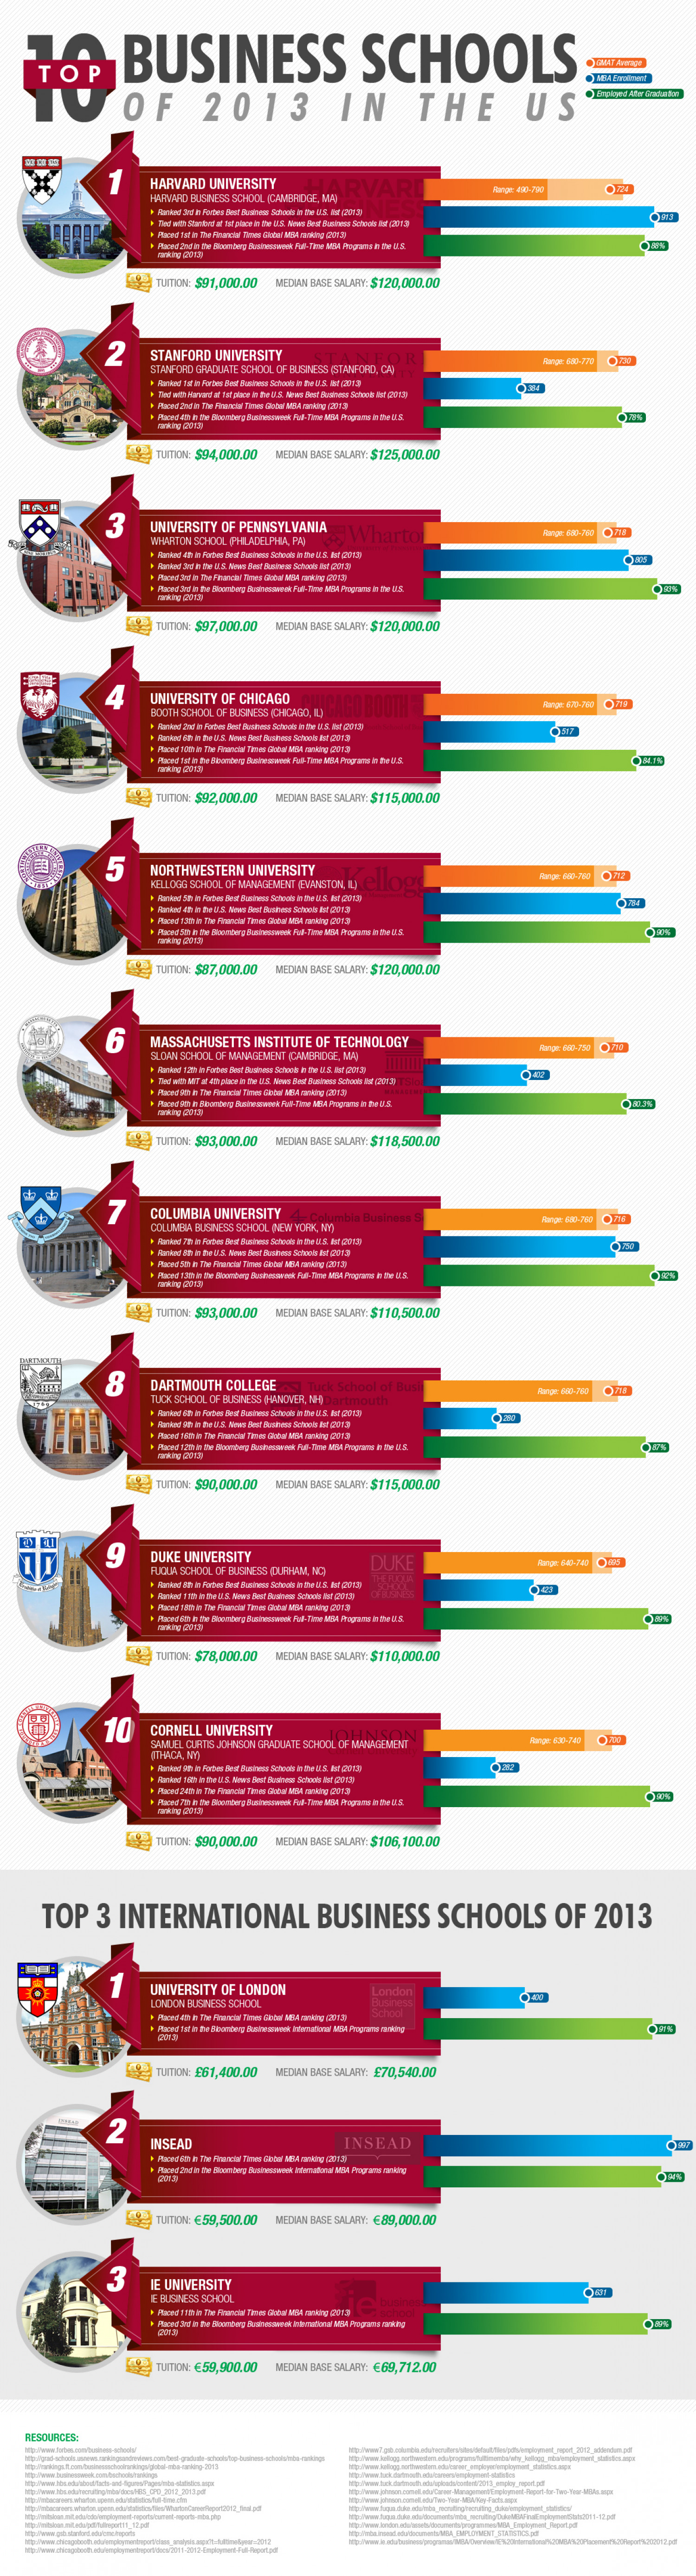 Top 10 Business School of 2013 in The US Infographic